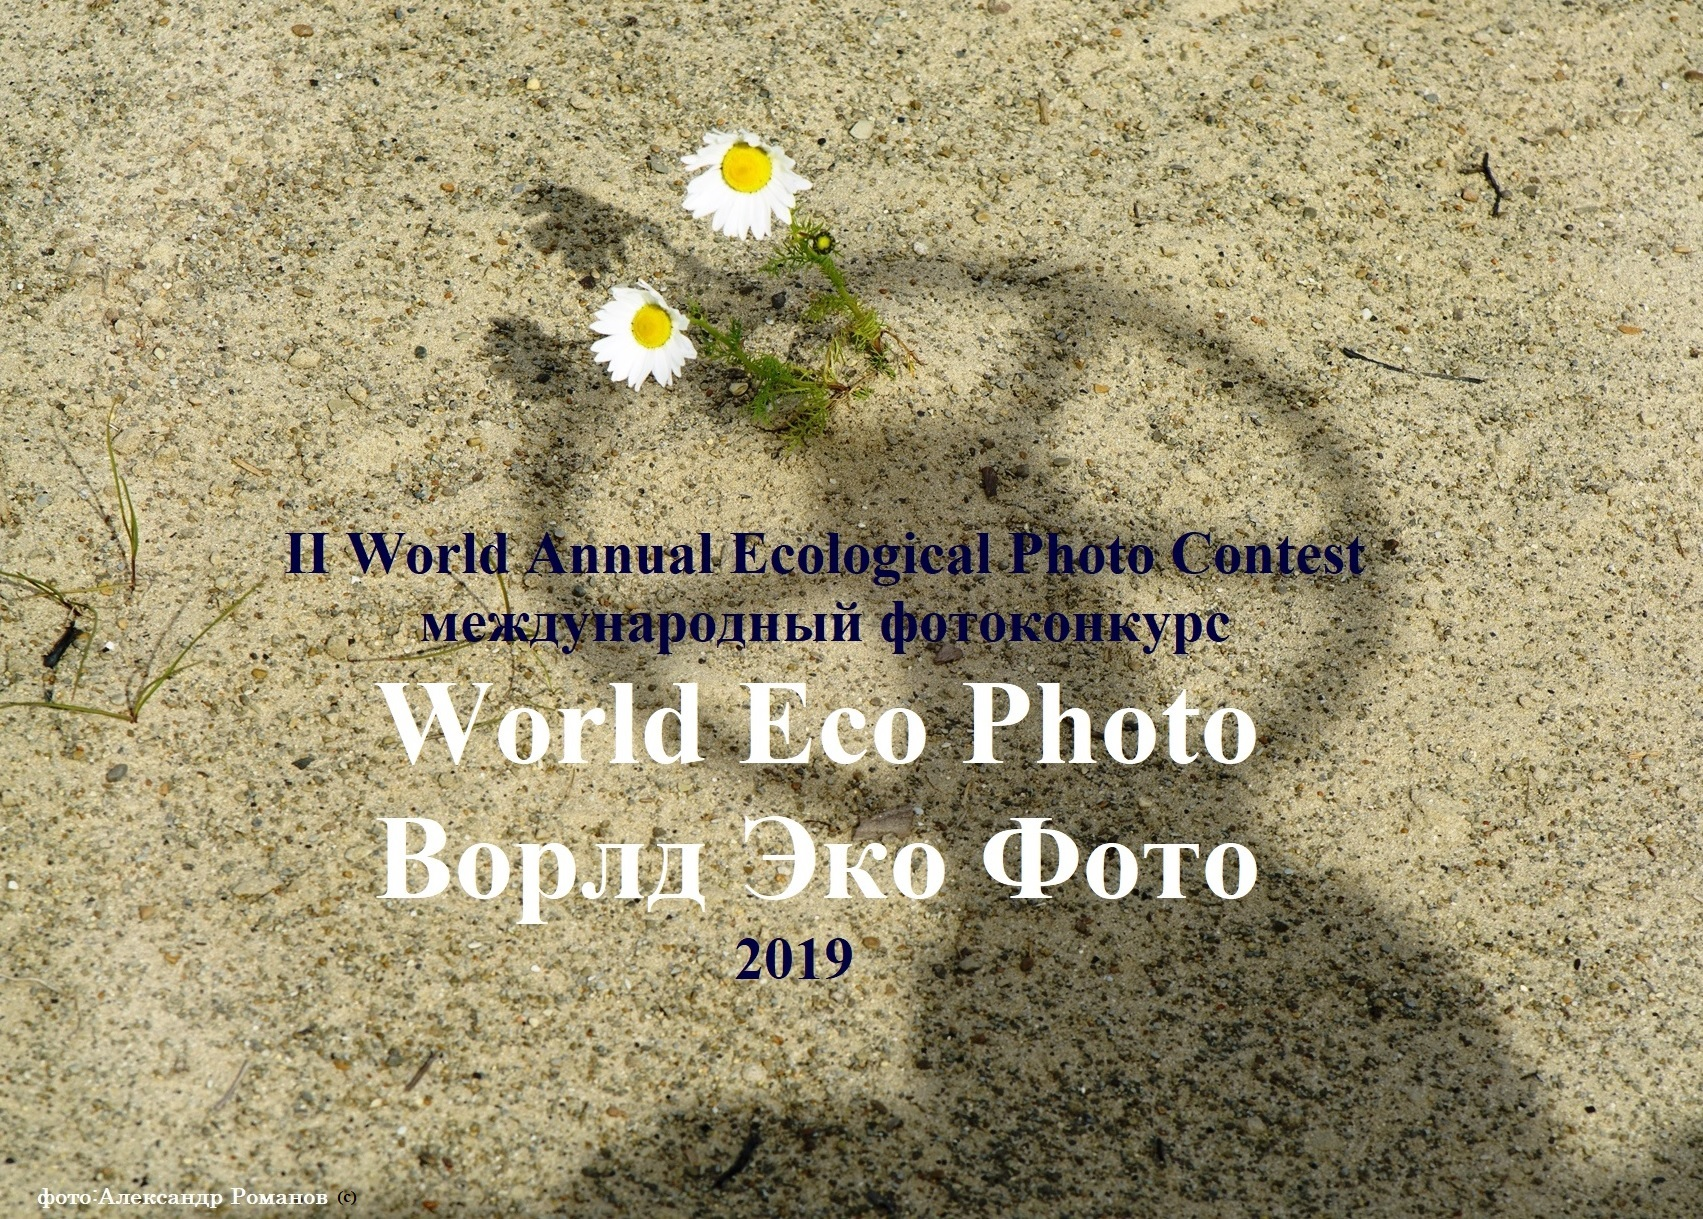 World Eco Photo 2019